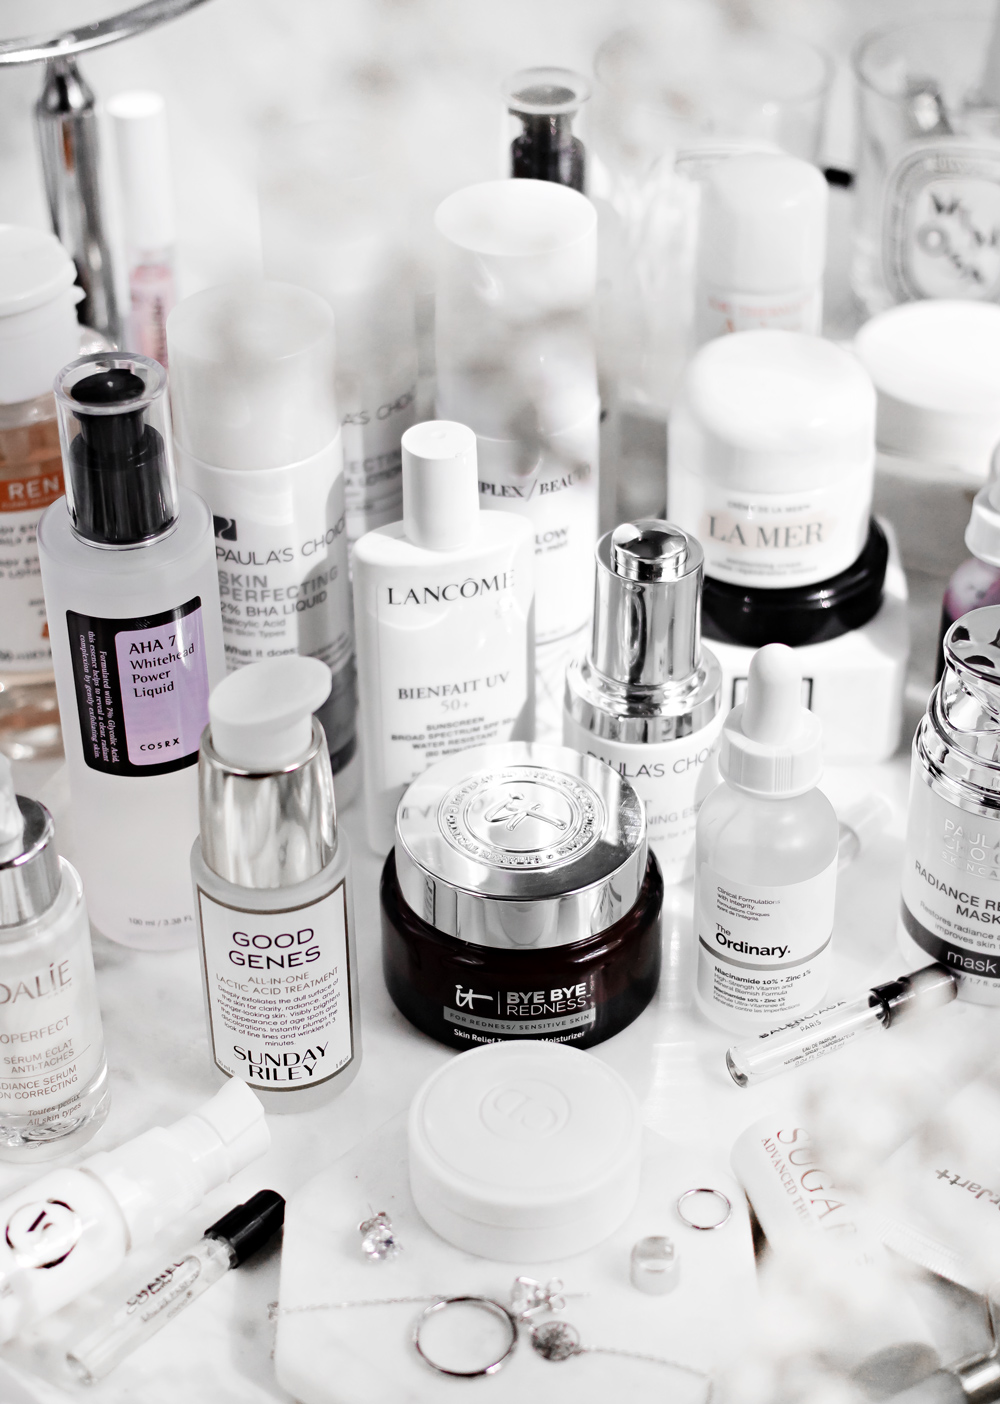 Products to treat dull skin